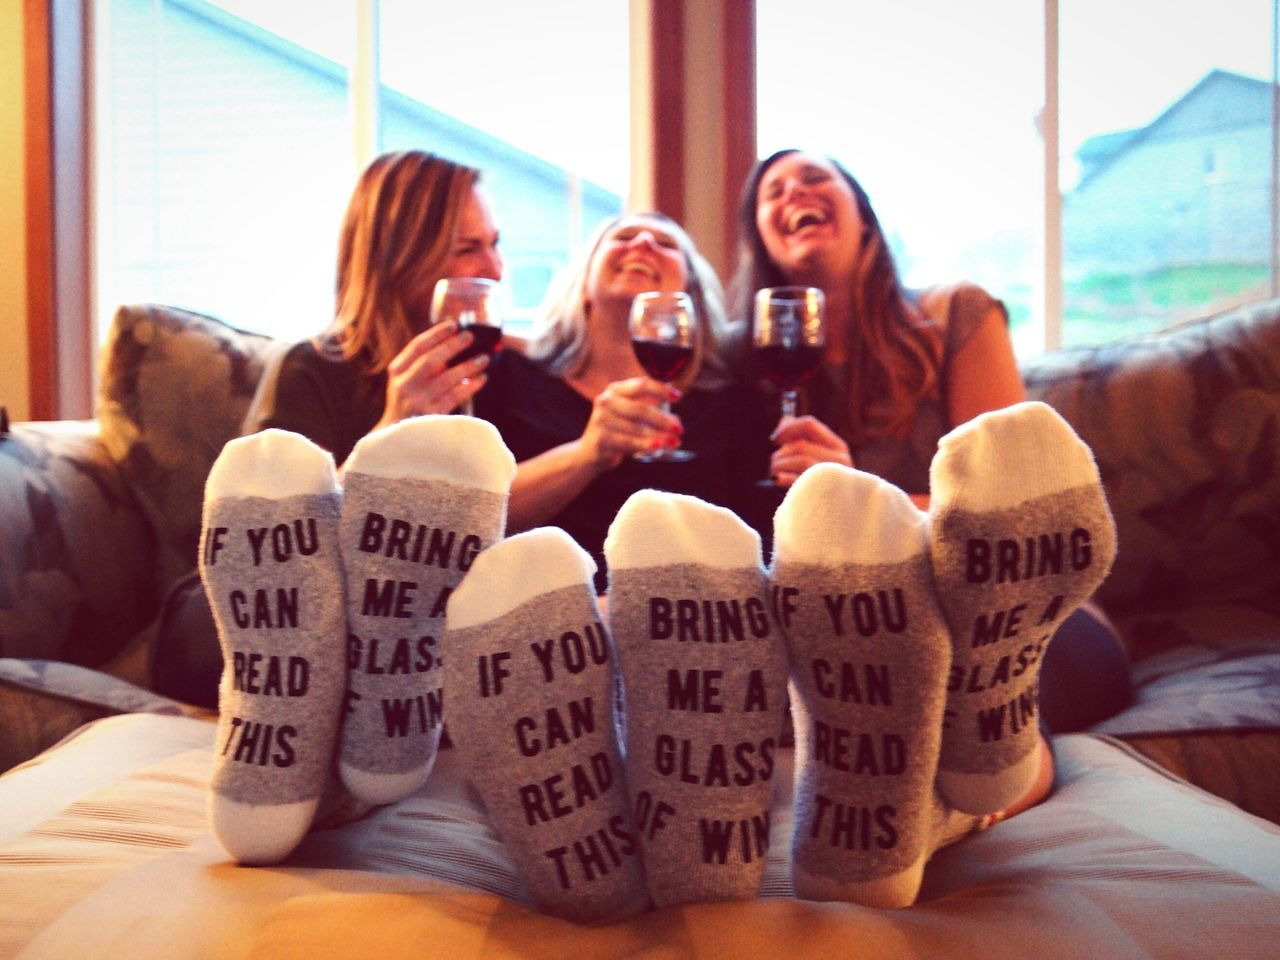 Always Be Cozy TK Maxx Socksie Toes Hilarious Women Adults Only Laughing Out Loud Laughing Text Funny Wine Foot Feet Communication Adult Home Interior Cheerful Young Women People Togetherness Friendship Socks Socksoftheday Socklovers